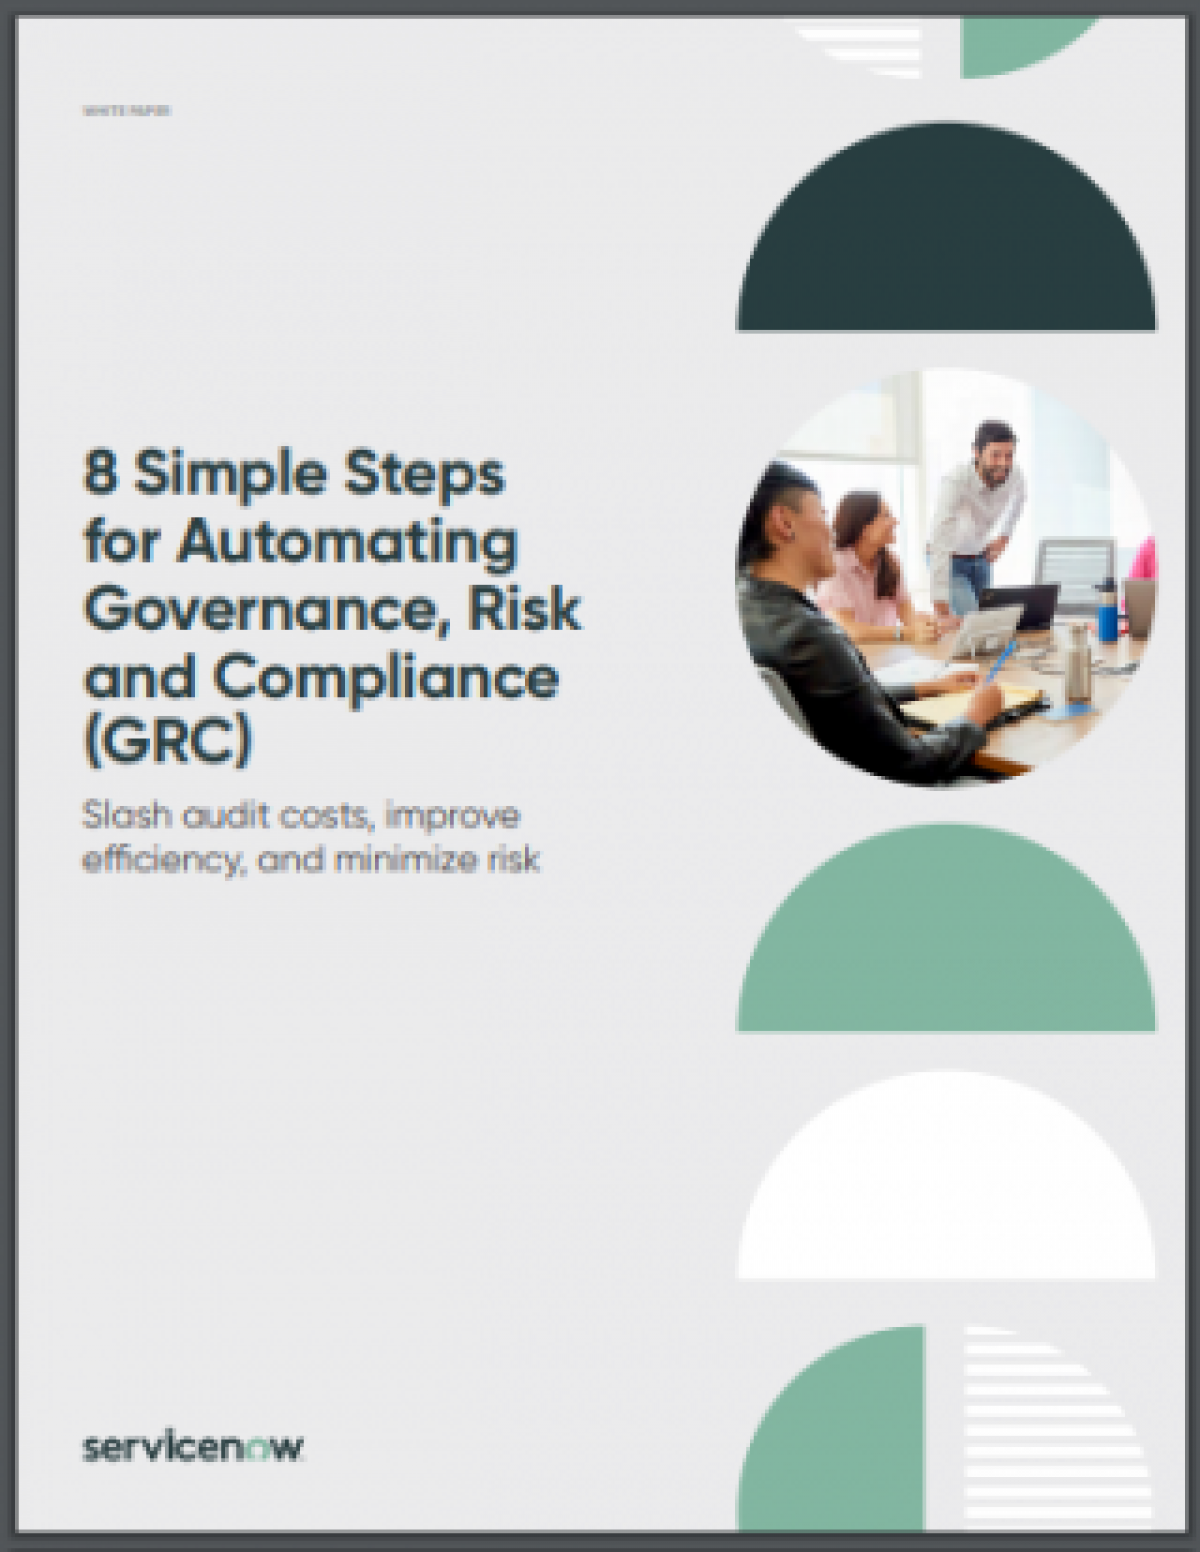 8 simple steps for automating GRC